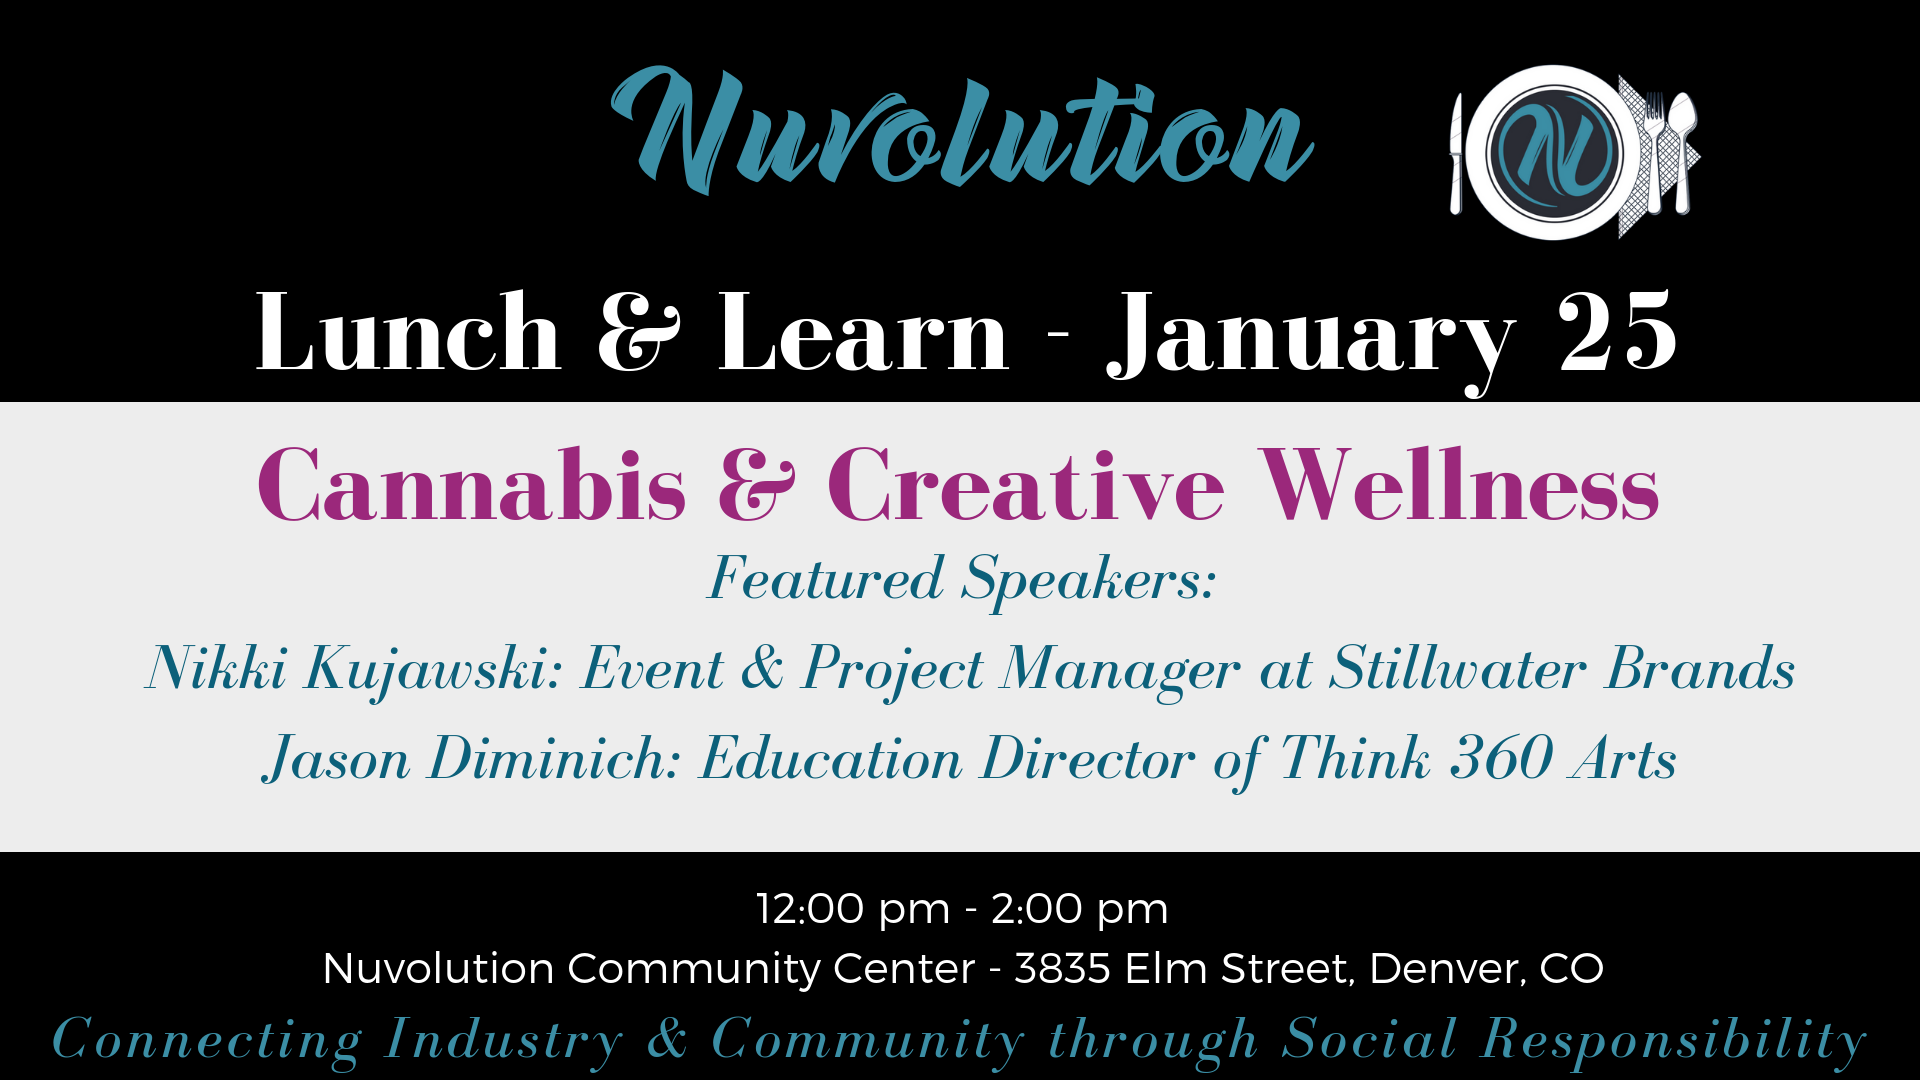 Nuvolution Lunch & Learn - January 25